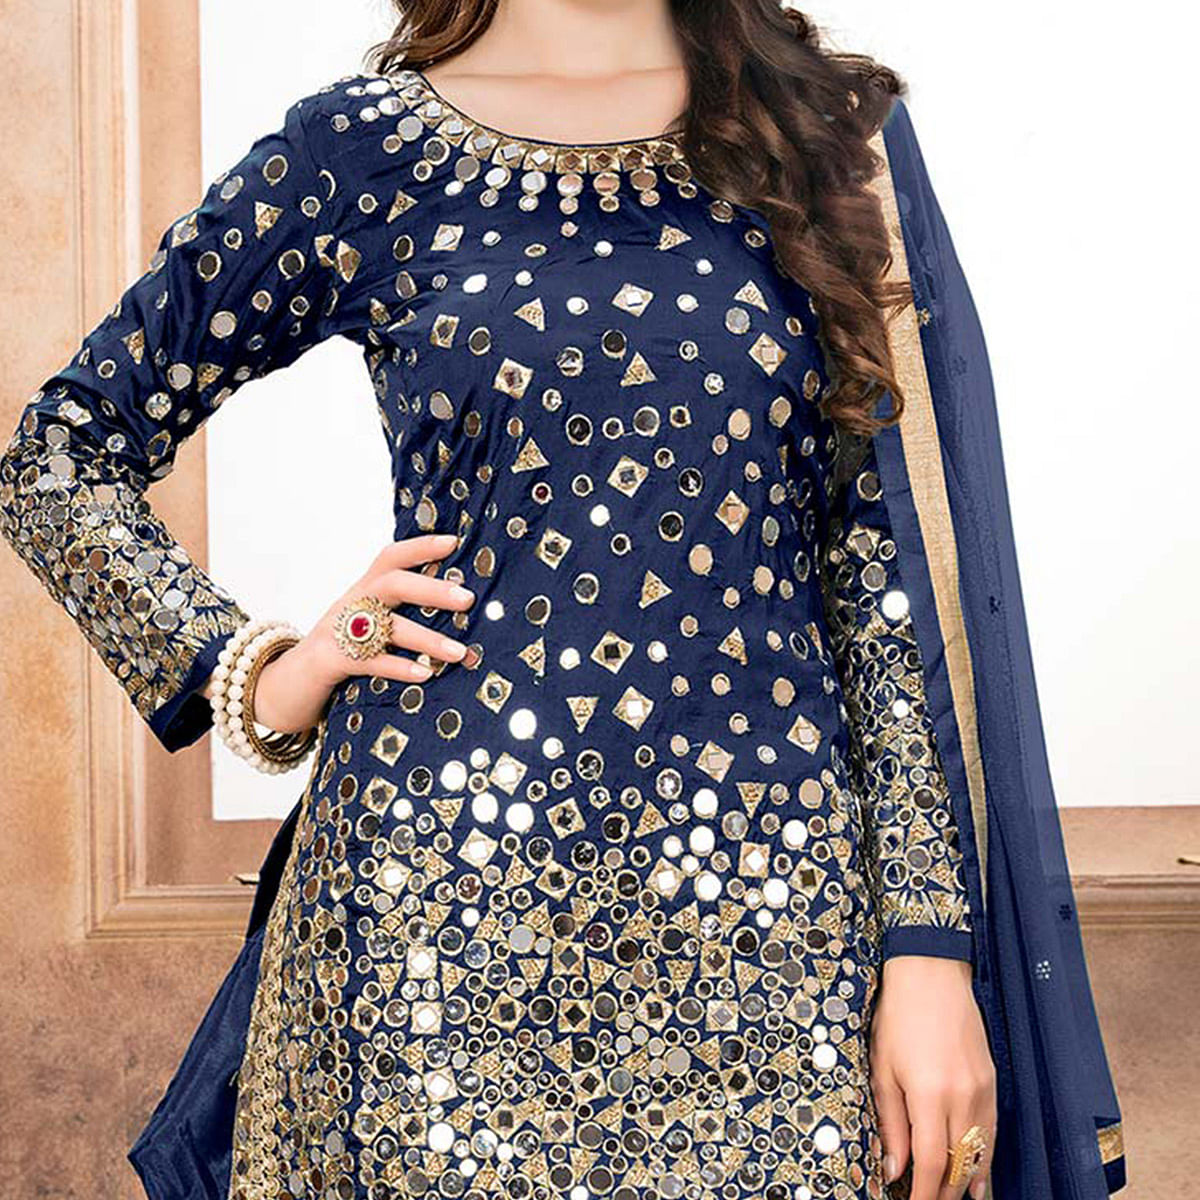 Stunning Navy Blue Designer Embroidered Partywear Tapetta Silk Patiala Suit